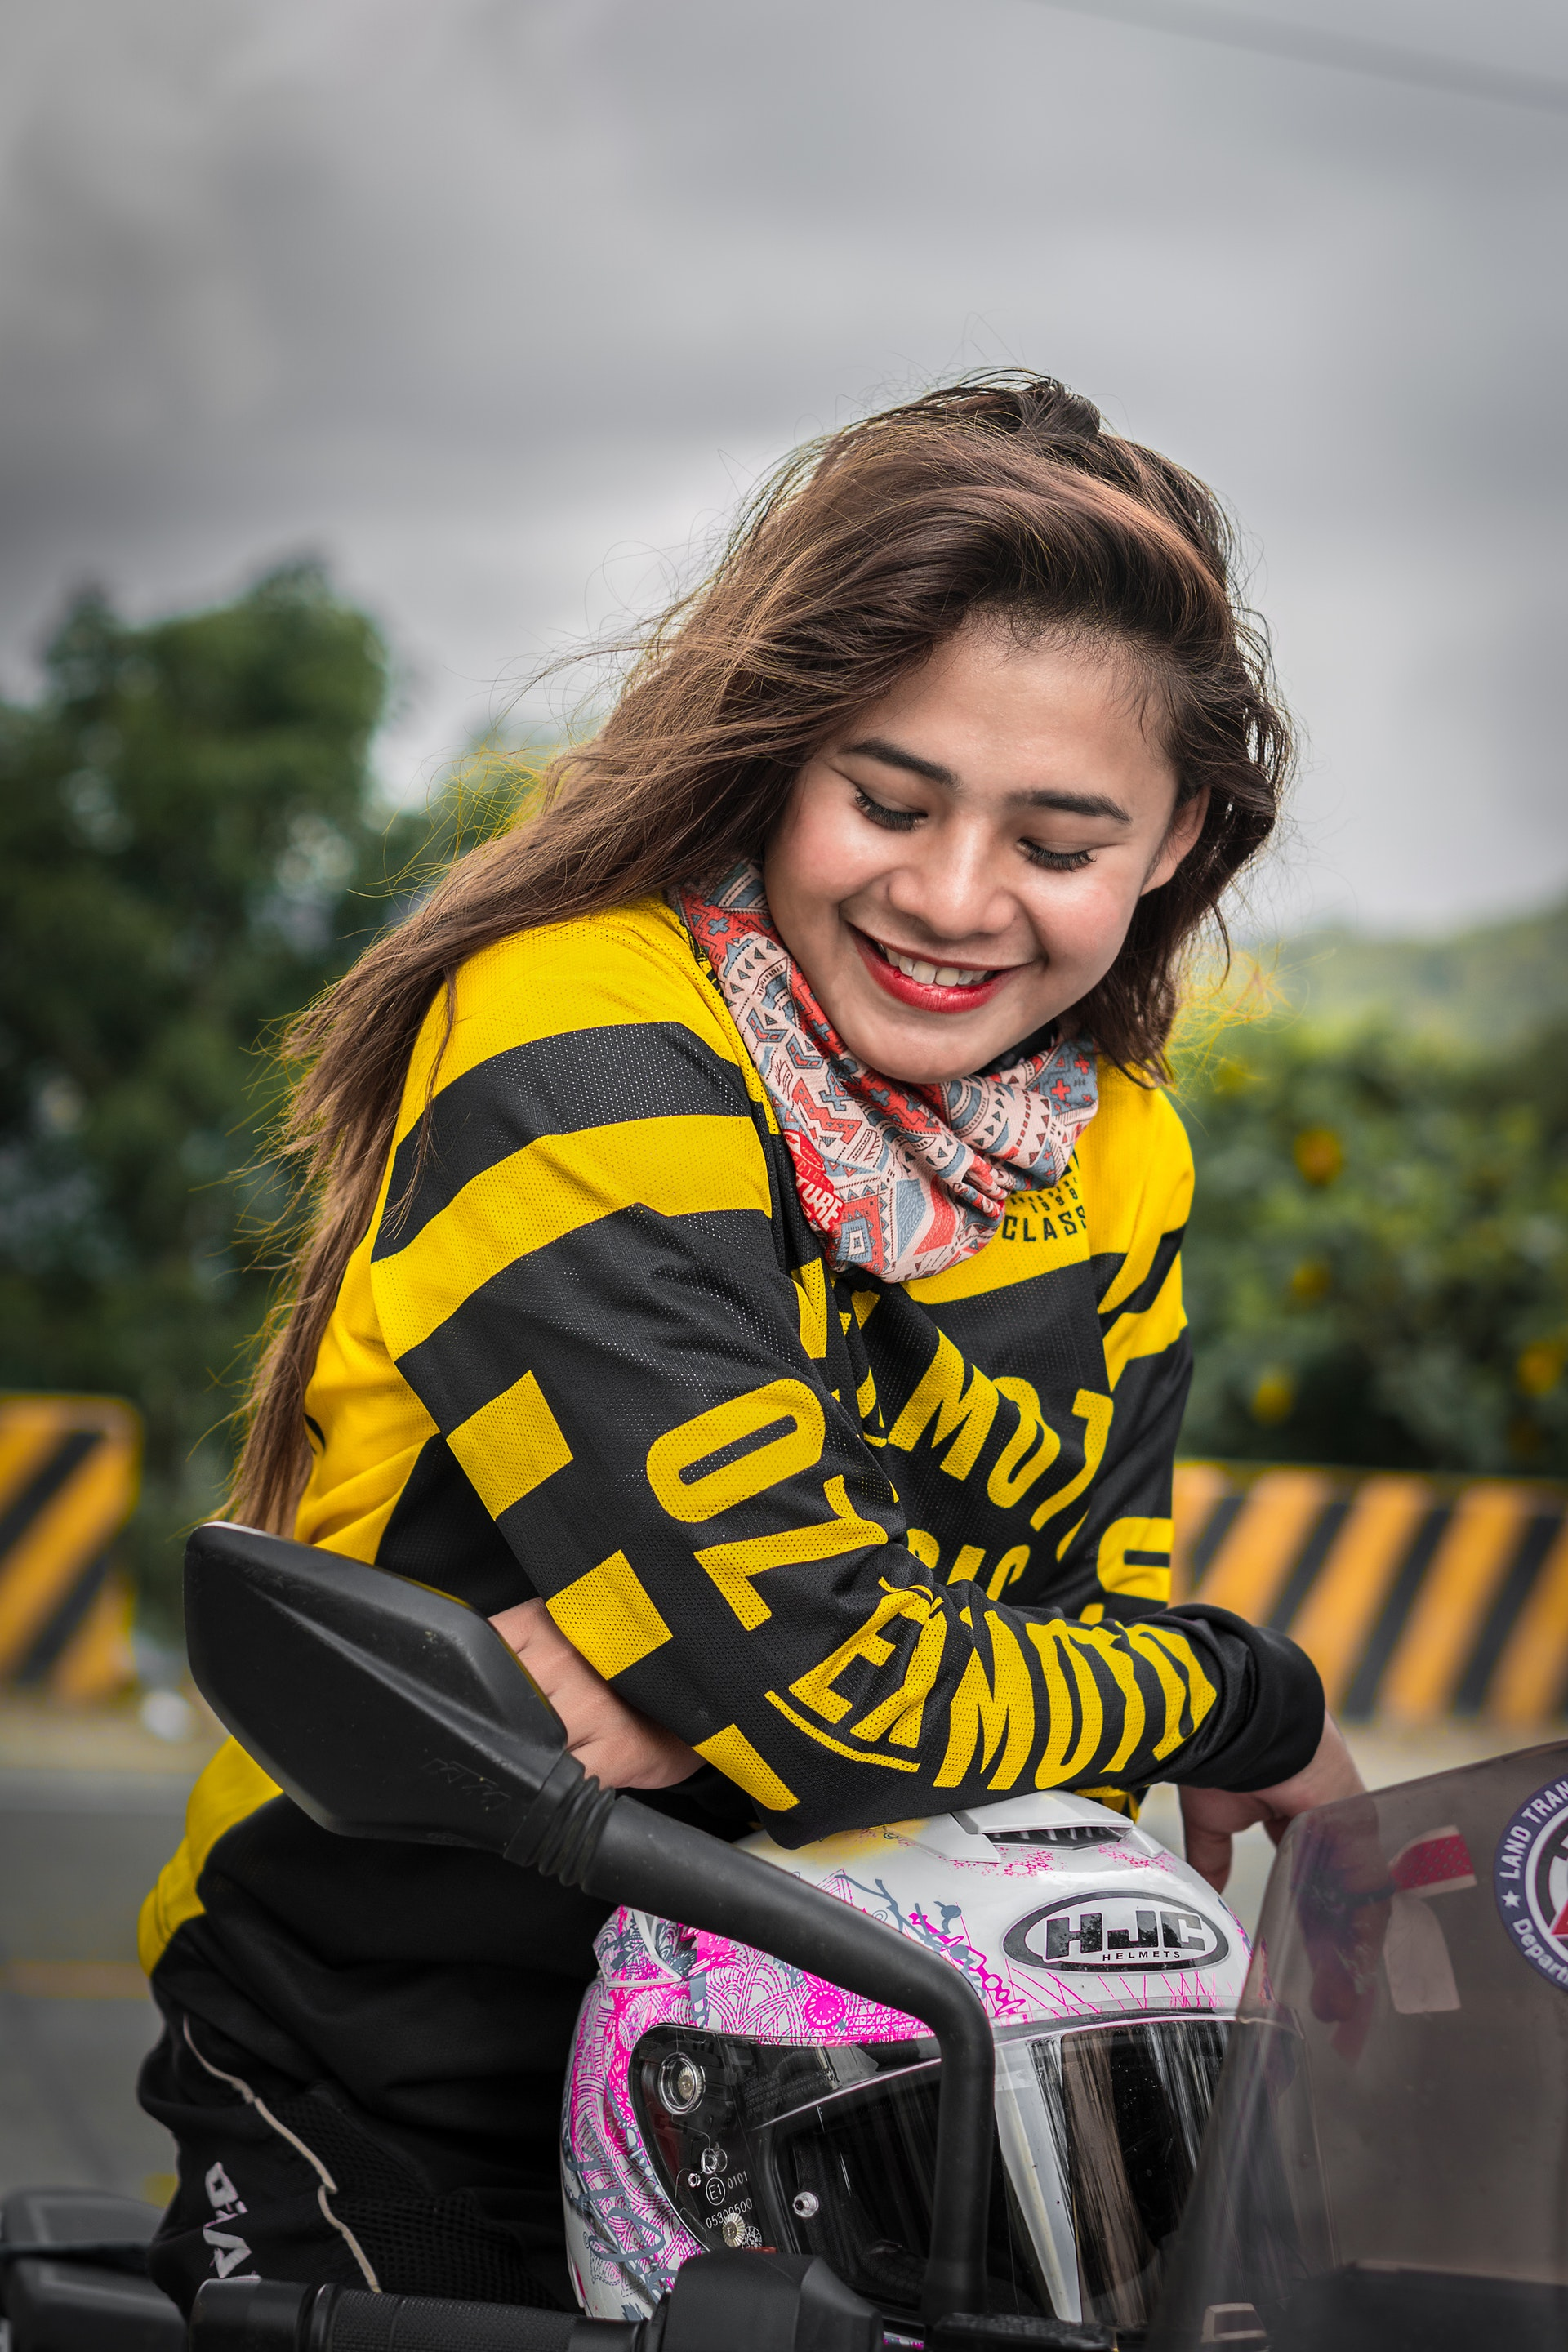 Wild Triumph Unveils Exclusive Women Only Motorcycle Tour To Celebrate International Women's Day